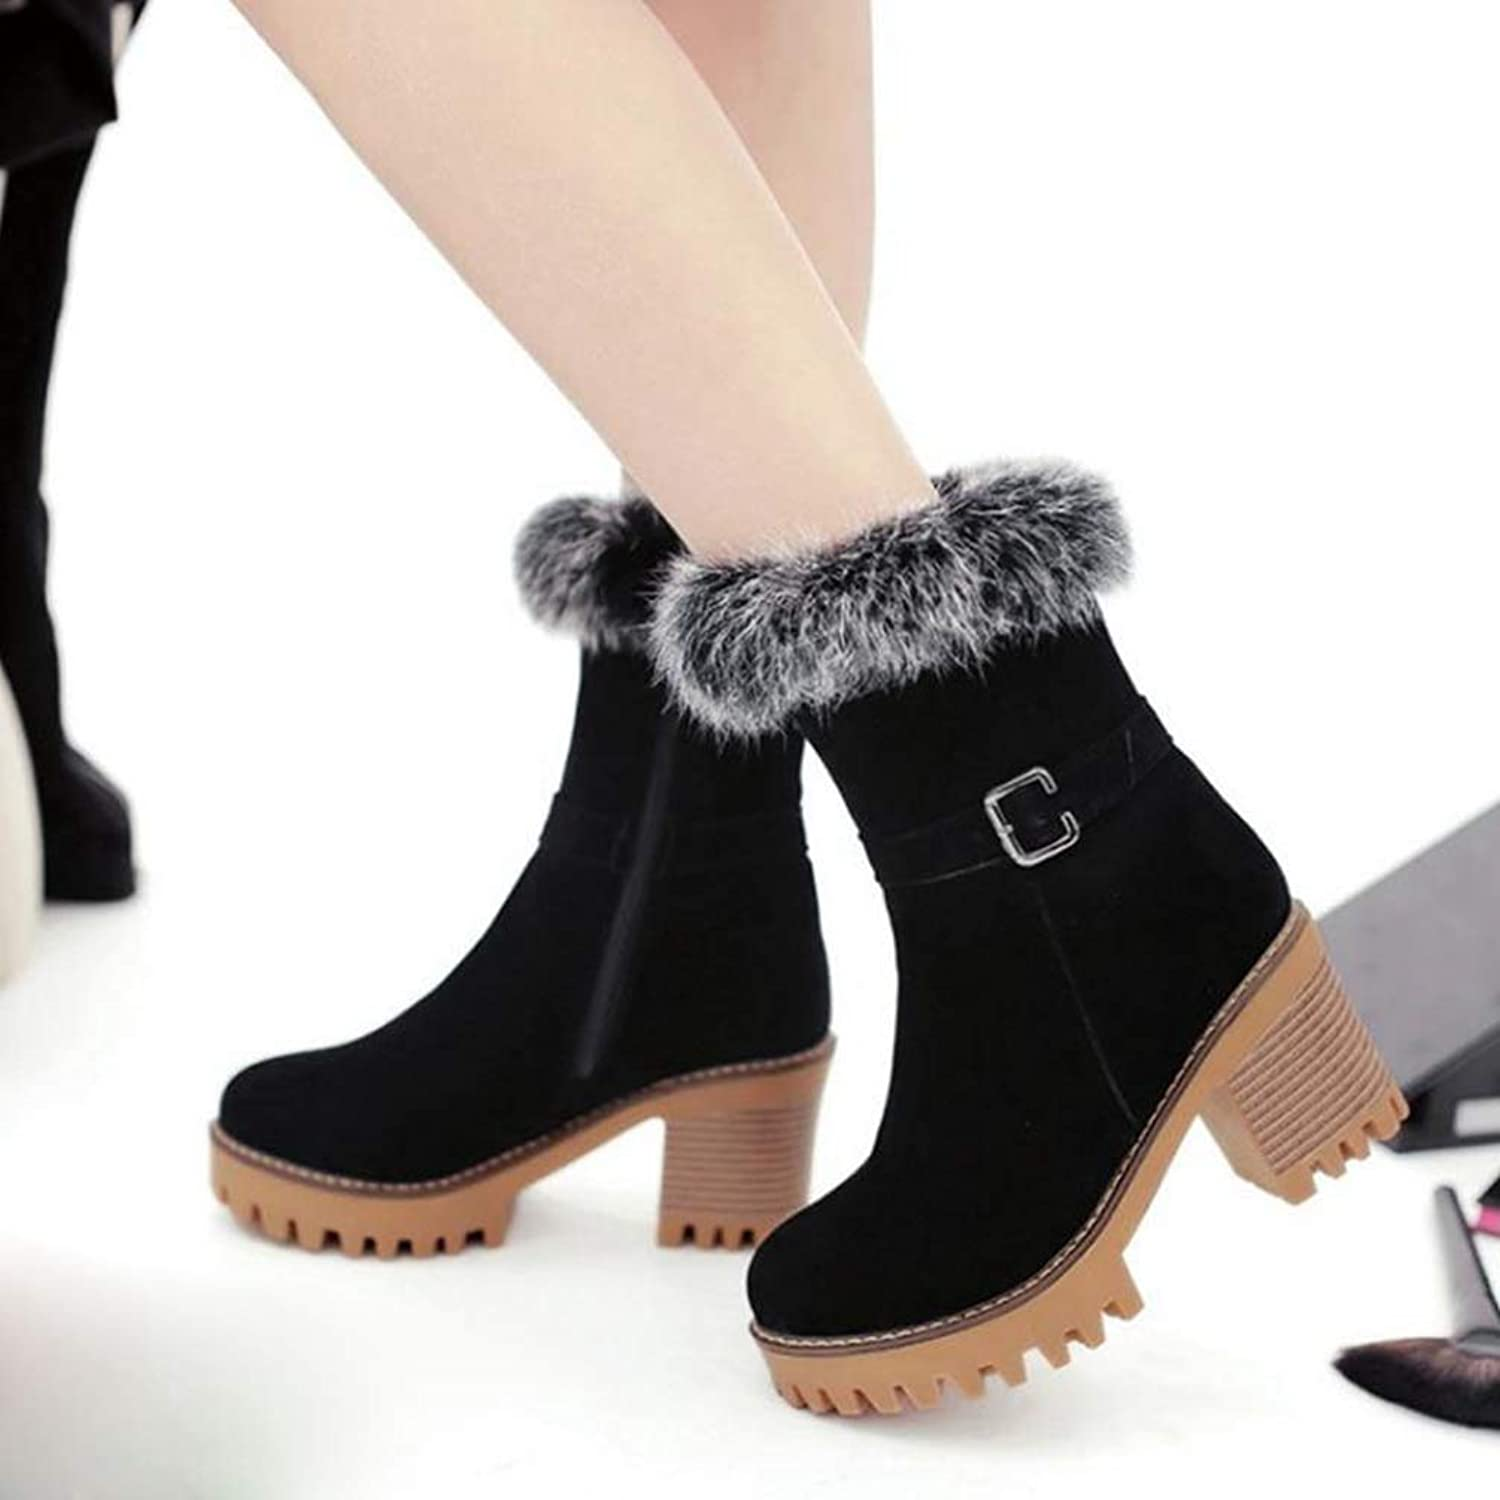 Hoxekle Women Mid Calf High Square Heel Boots Thick Fur Buckle Short Boots Round Toe Winter Snow Girl Footwear